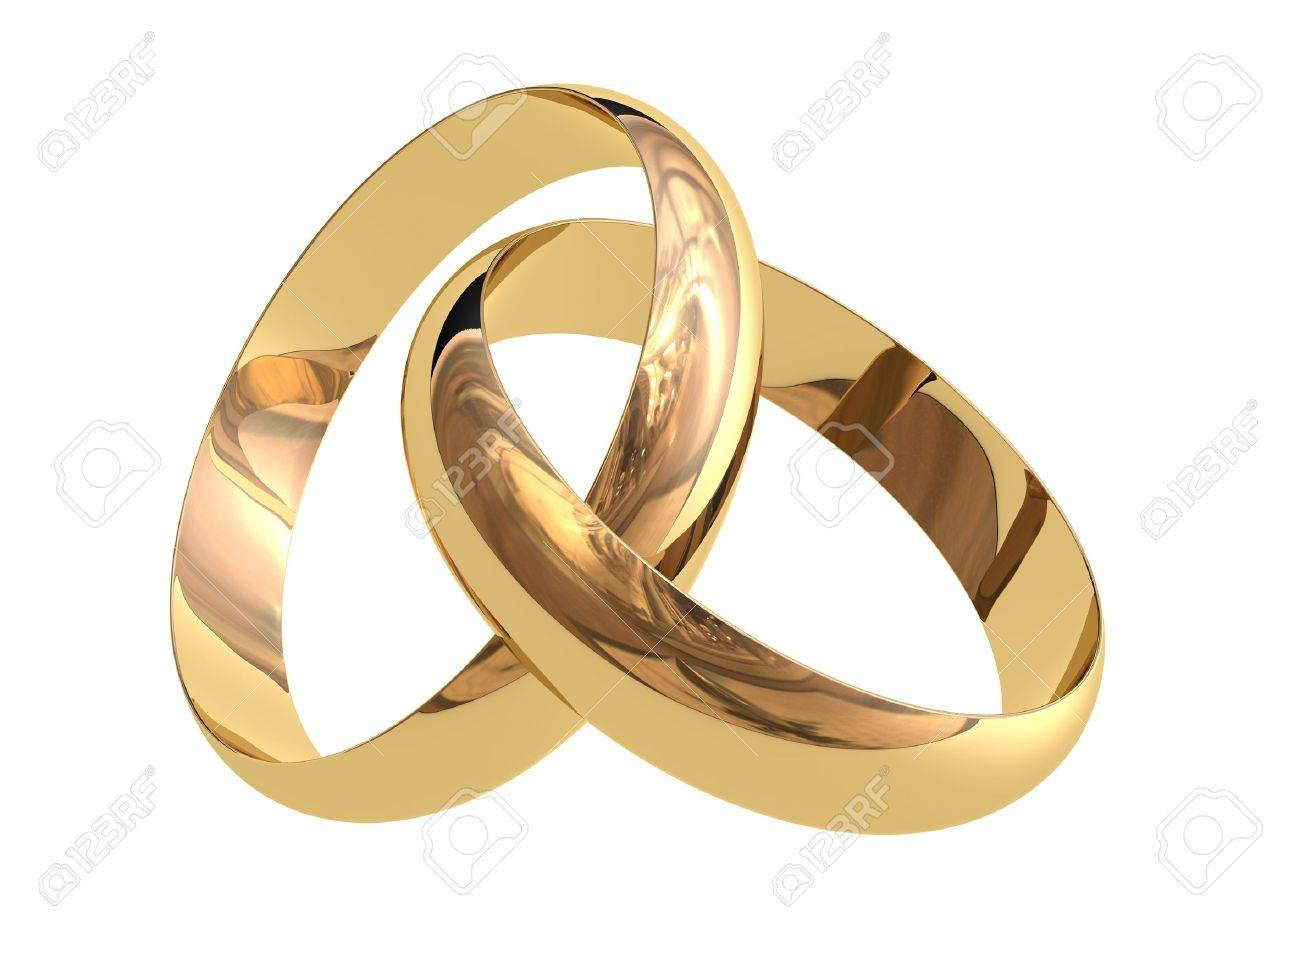 Christian Wedding Ring: Two Linked Wedding Rings On A White Background